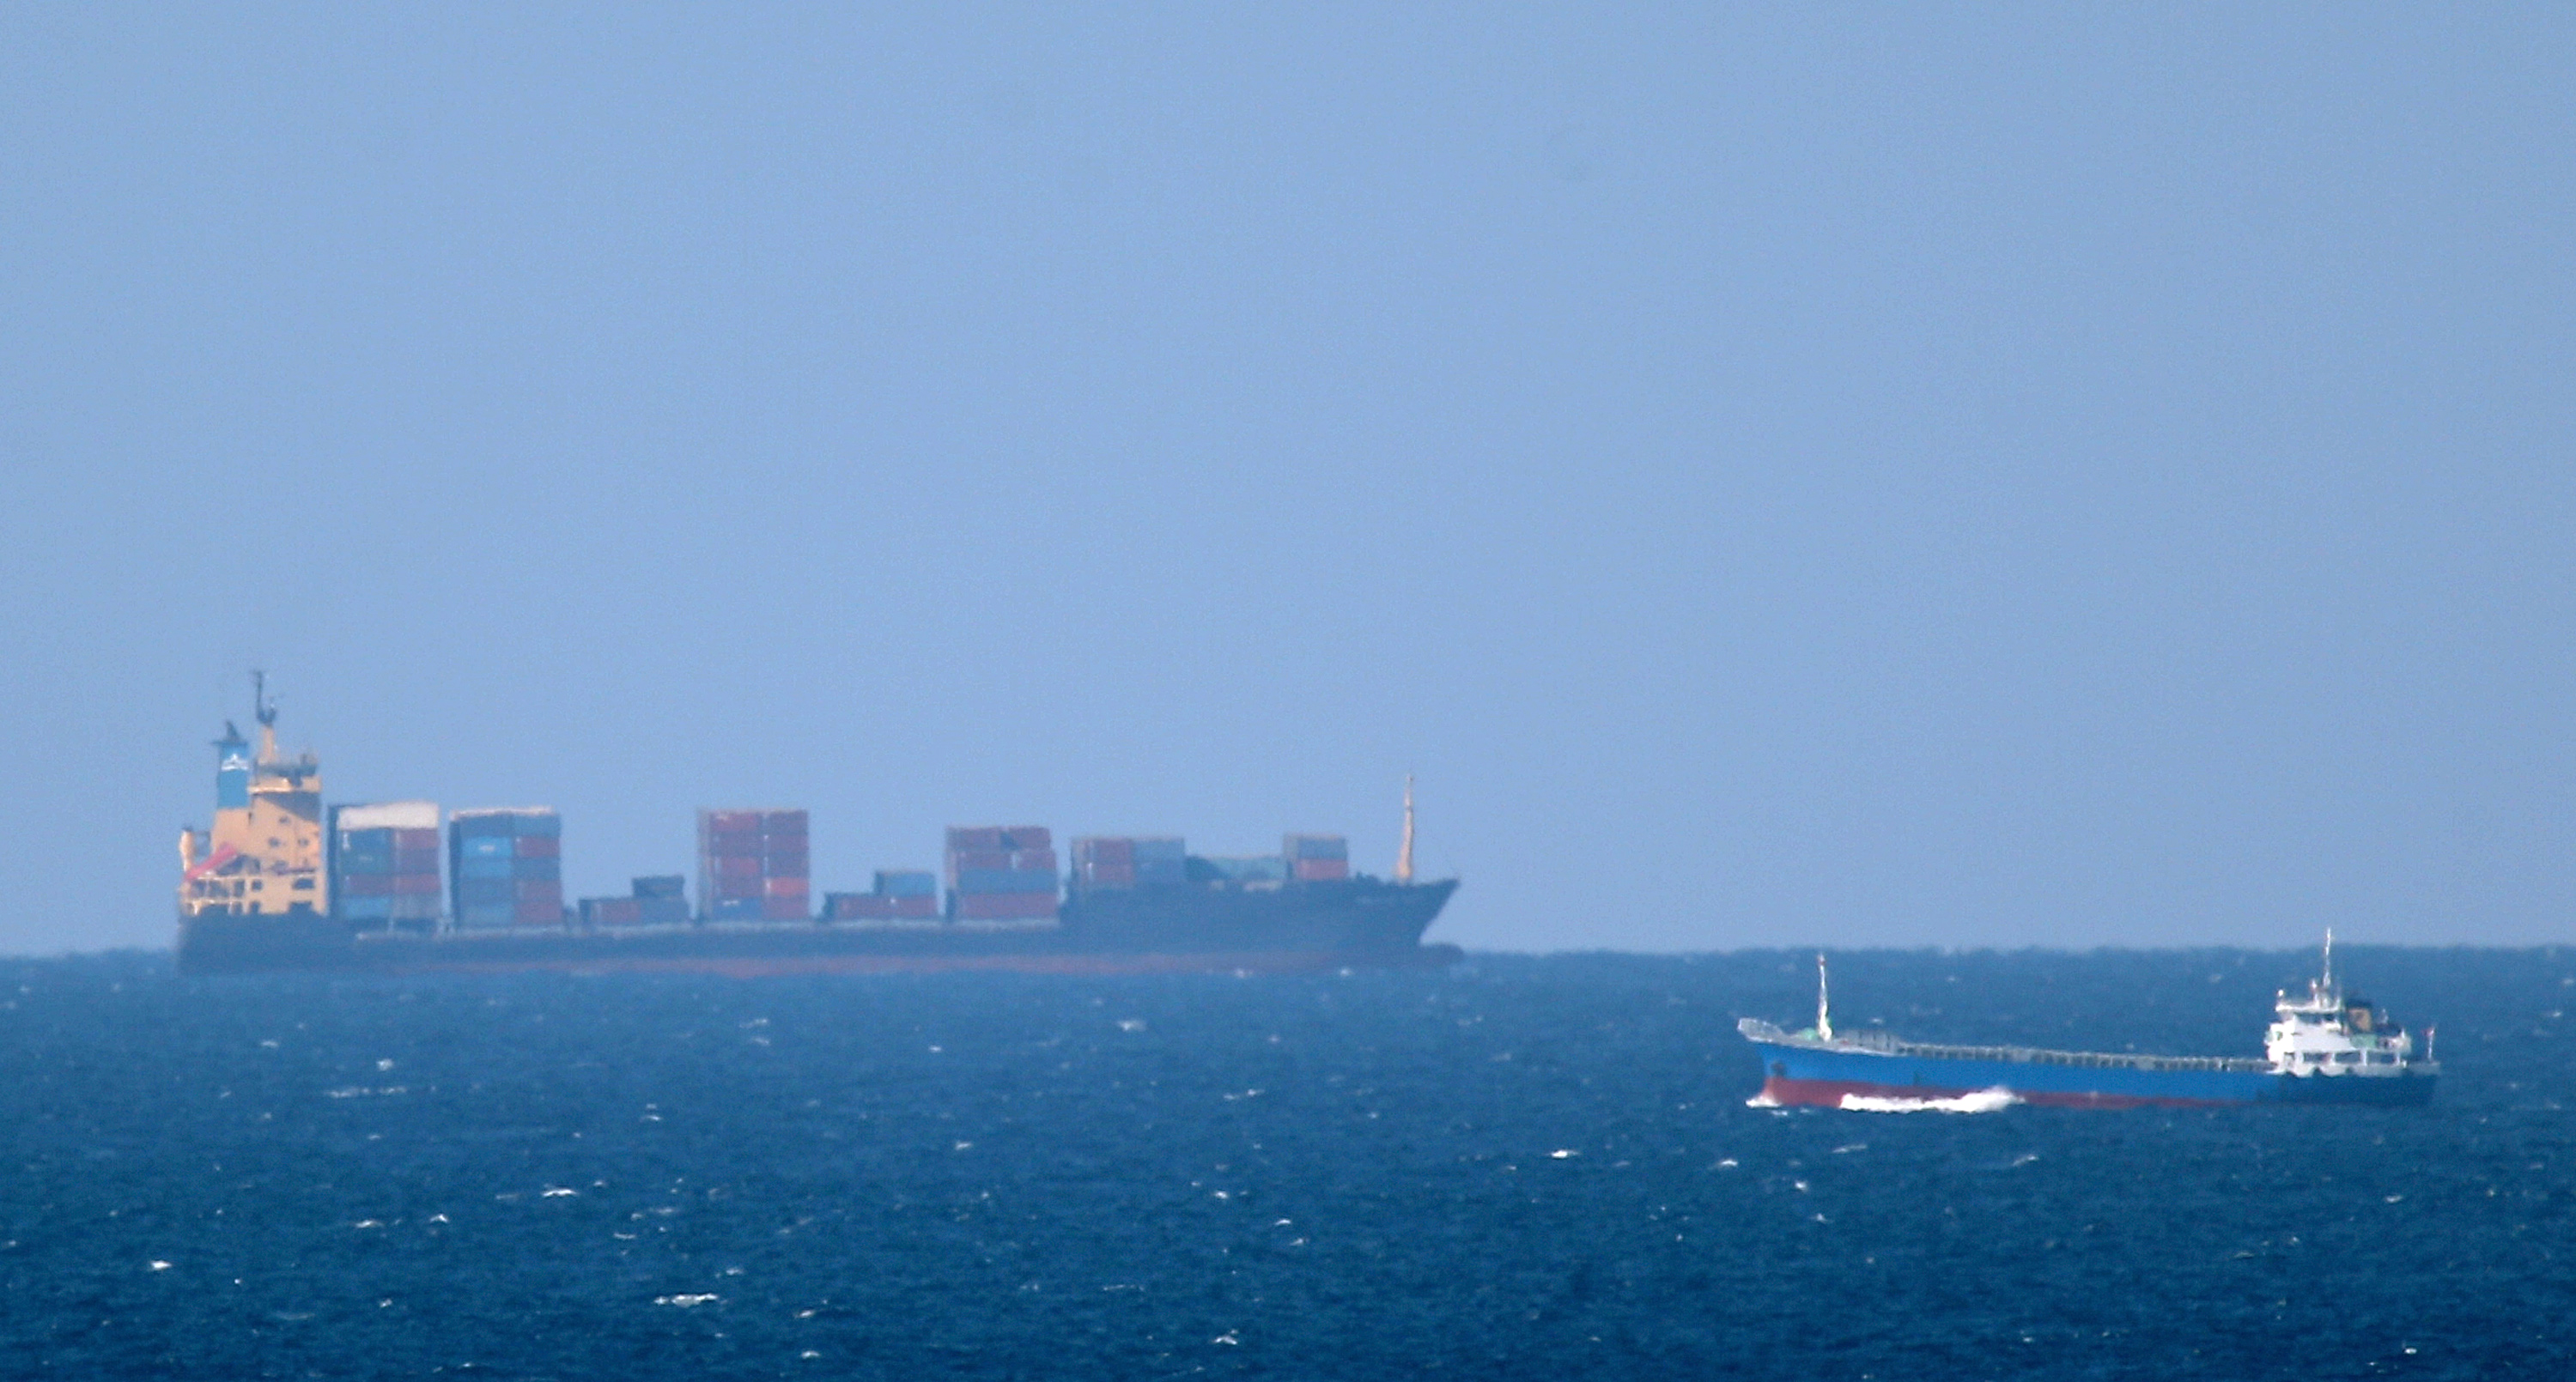 Cargo ships in the Strait of Hormuz in a file photo. (Getty)